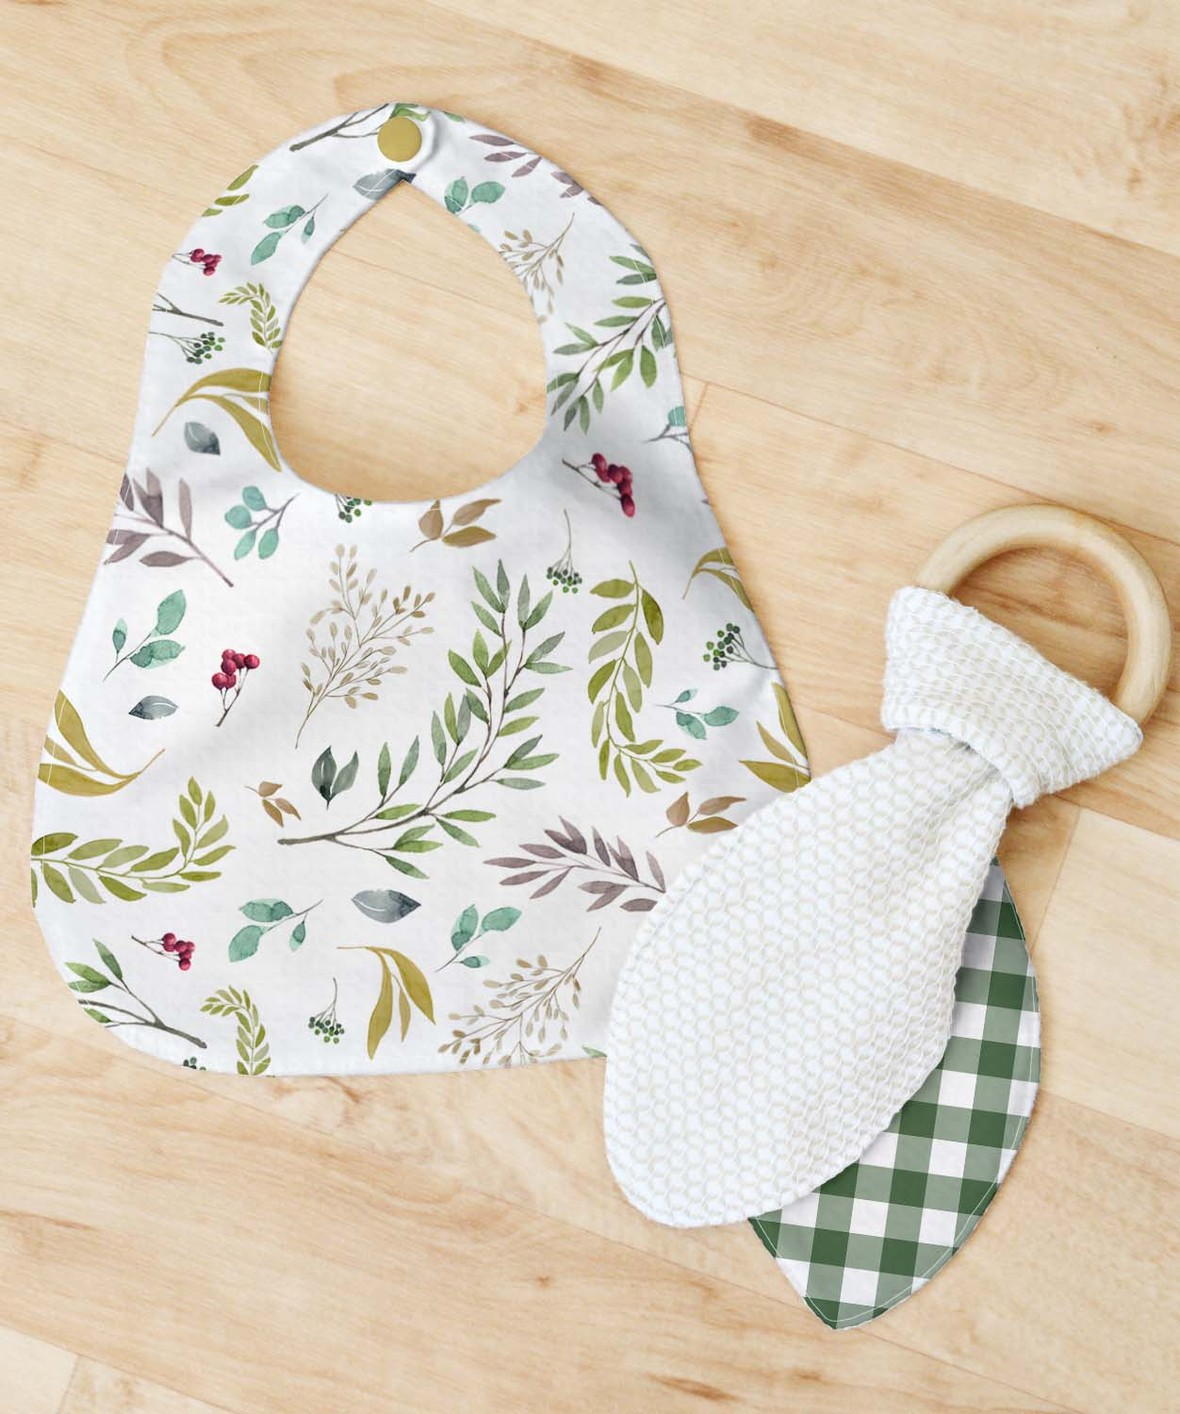 Bib and Teether Large Scale Foliage Green Gingham